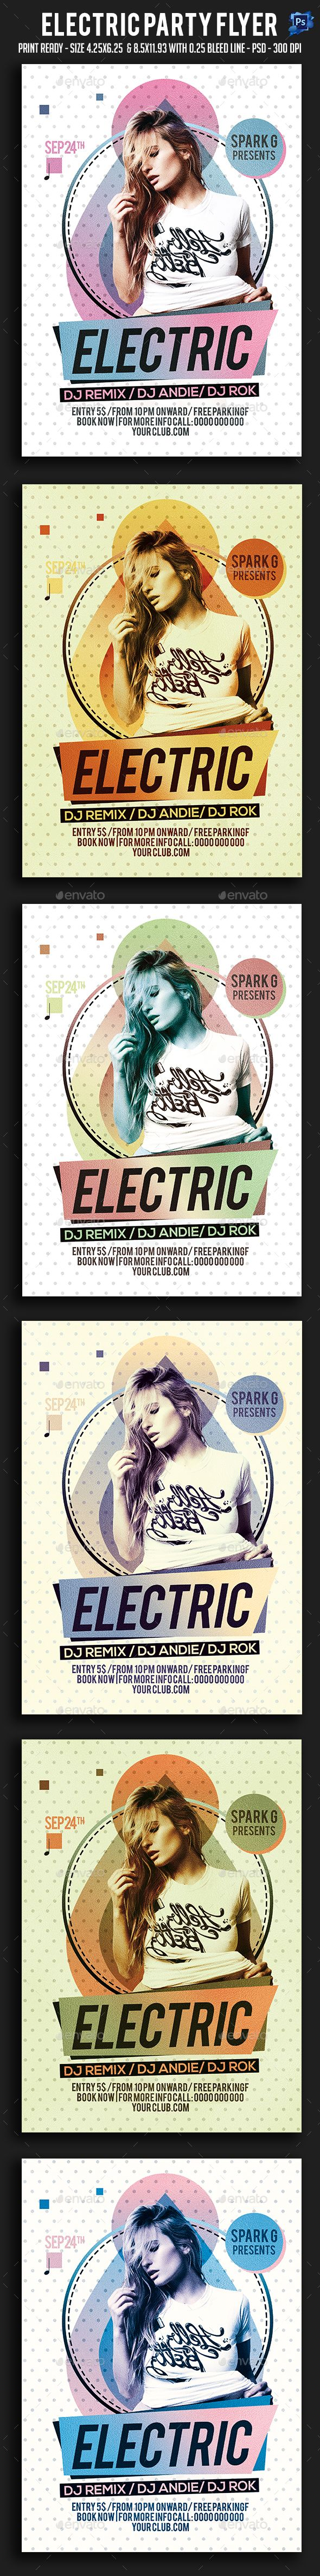 Electric Party Flyer  — PSD Template #dubstep #house dj • Download ➝ https://graphicriver.net/item/electric-party-flyer/18190628?ref=pxcr